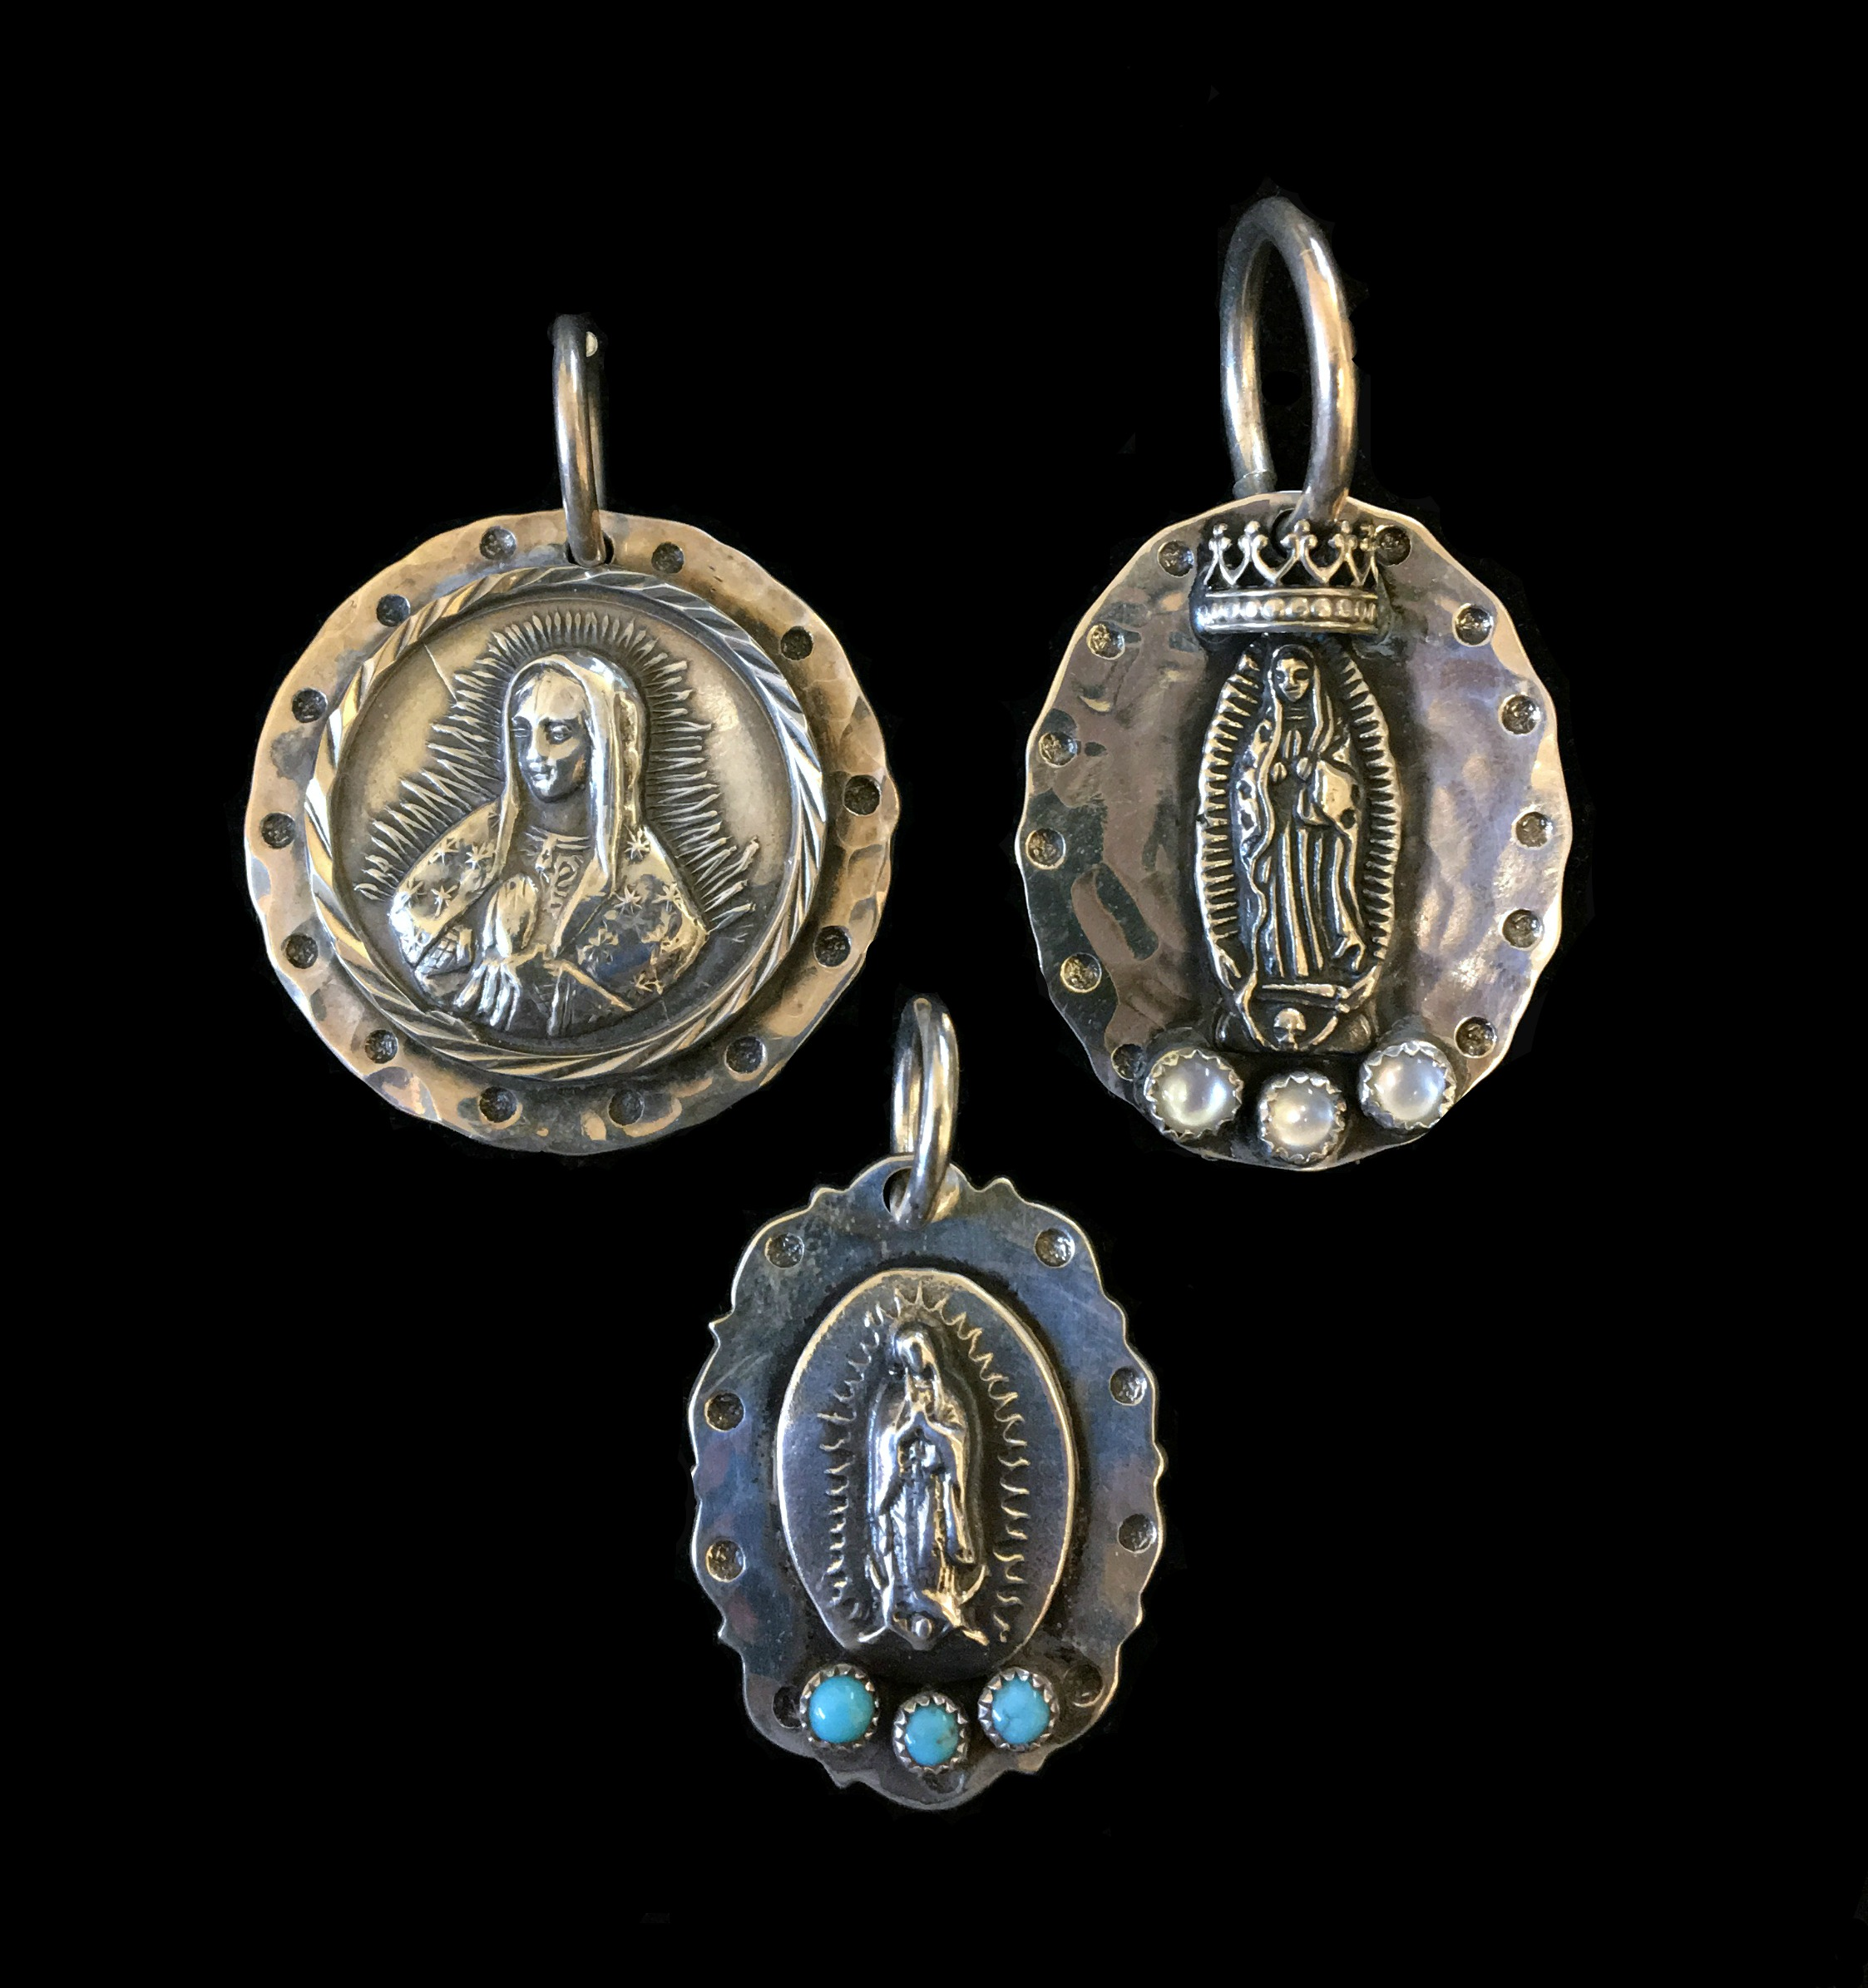 Our Lady of Guadalupe Pendent